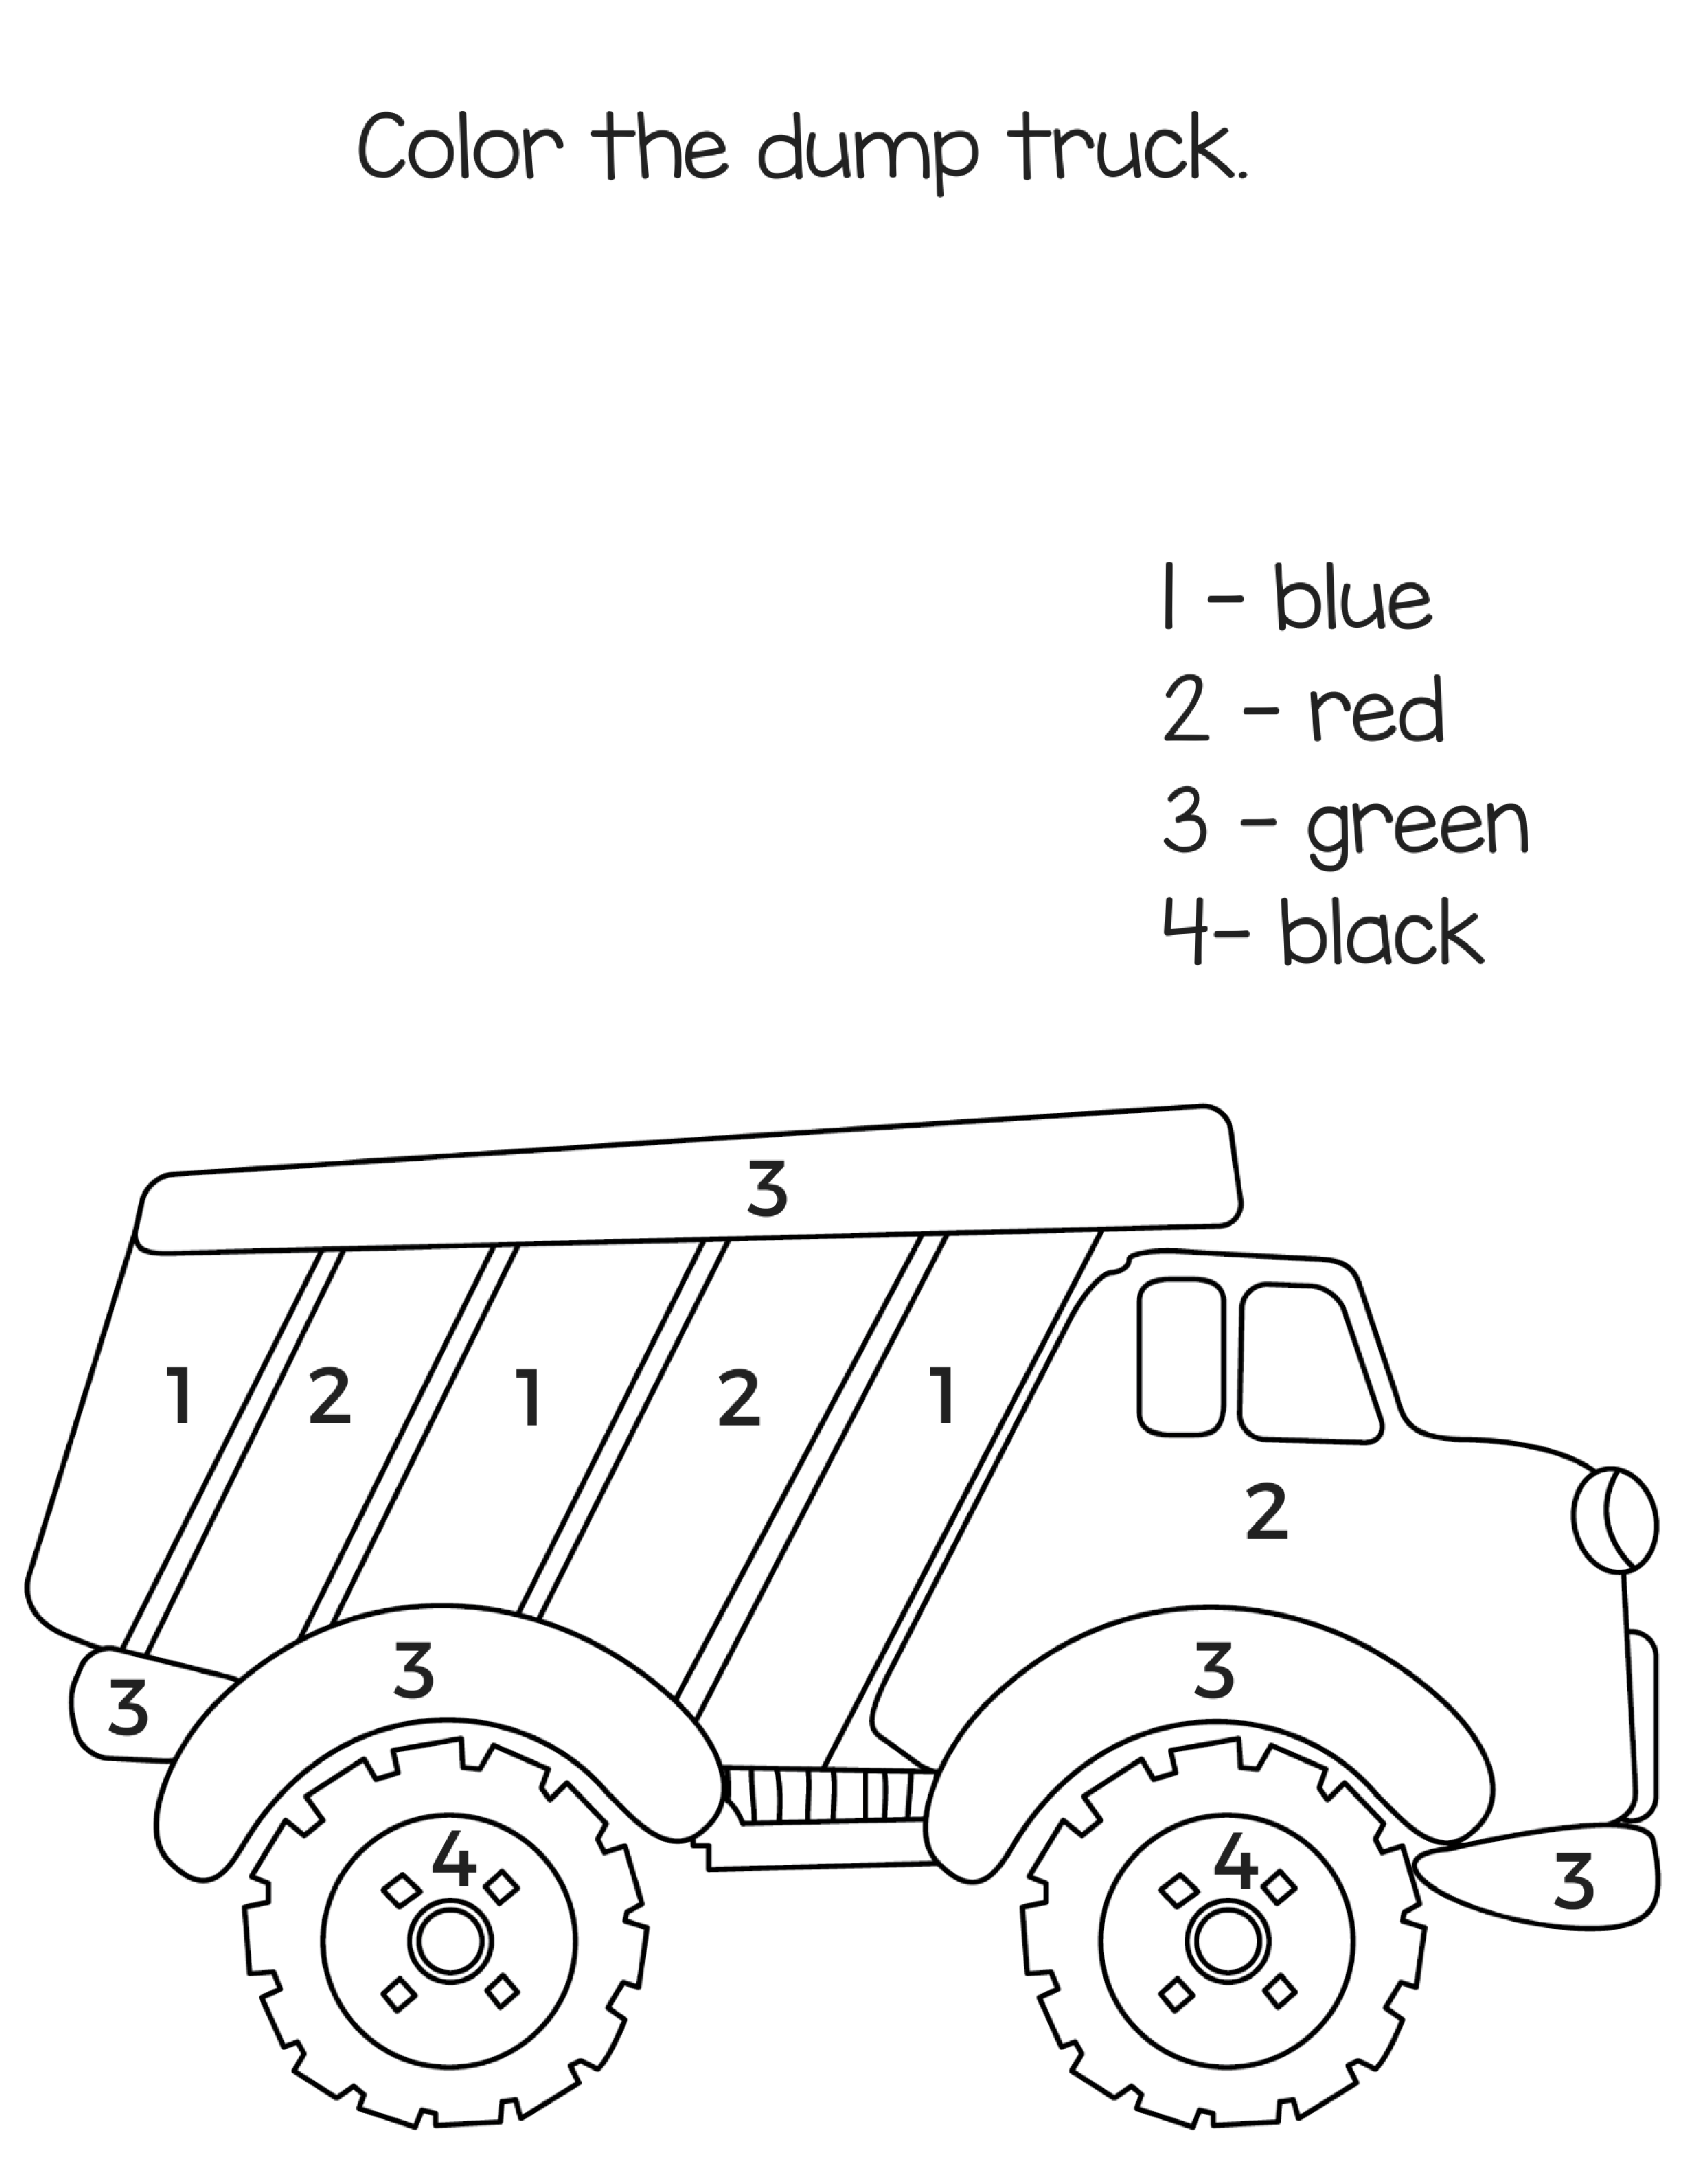 Big Preschool Workbook Download - For Boys